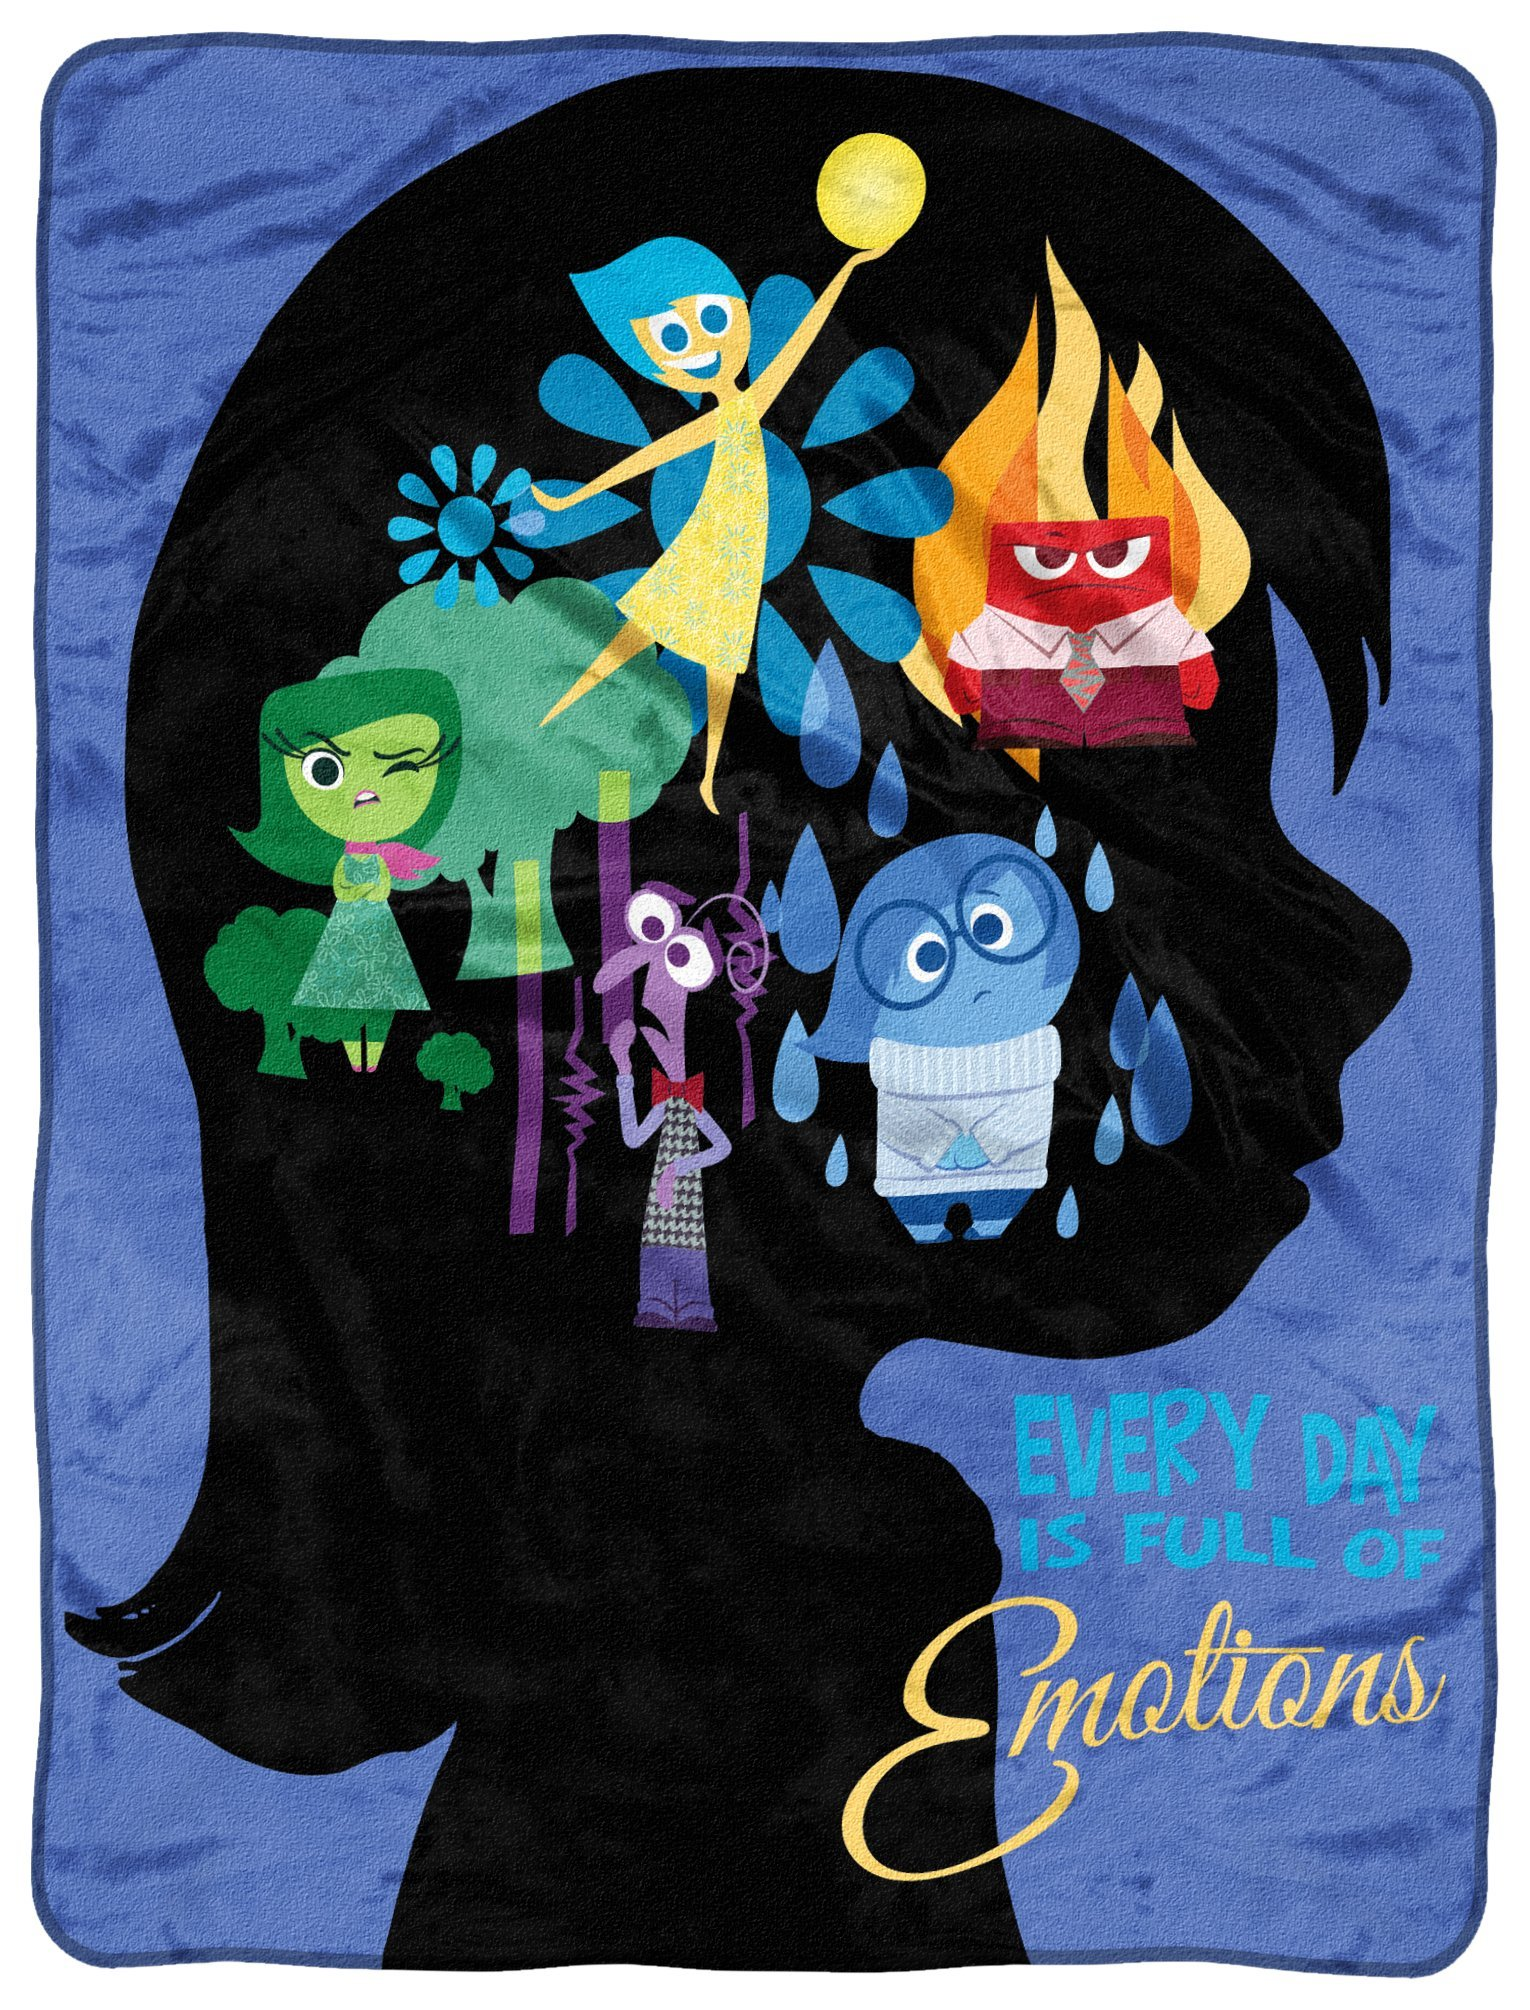 Disney-Pixar's Inside Out, ''Everyday Poster'' Micro Raschel Throw Blanket, 46'' x 60'', Multi Color by Disney